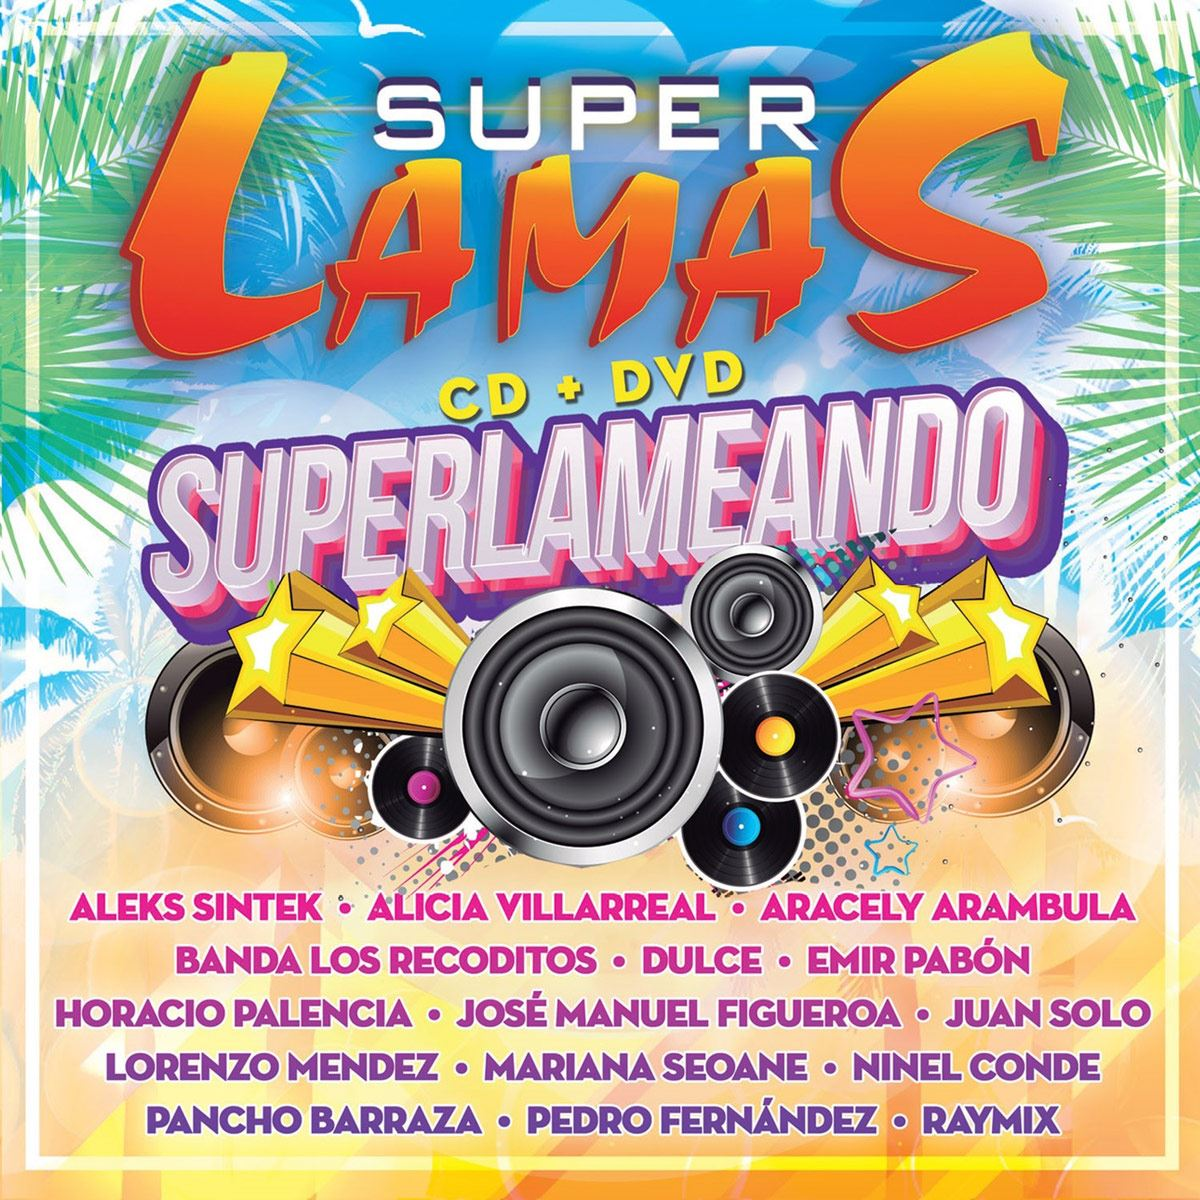 CD+ DVD Super Lamas- Superlameando